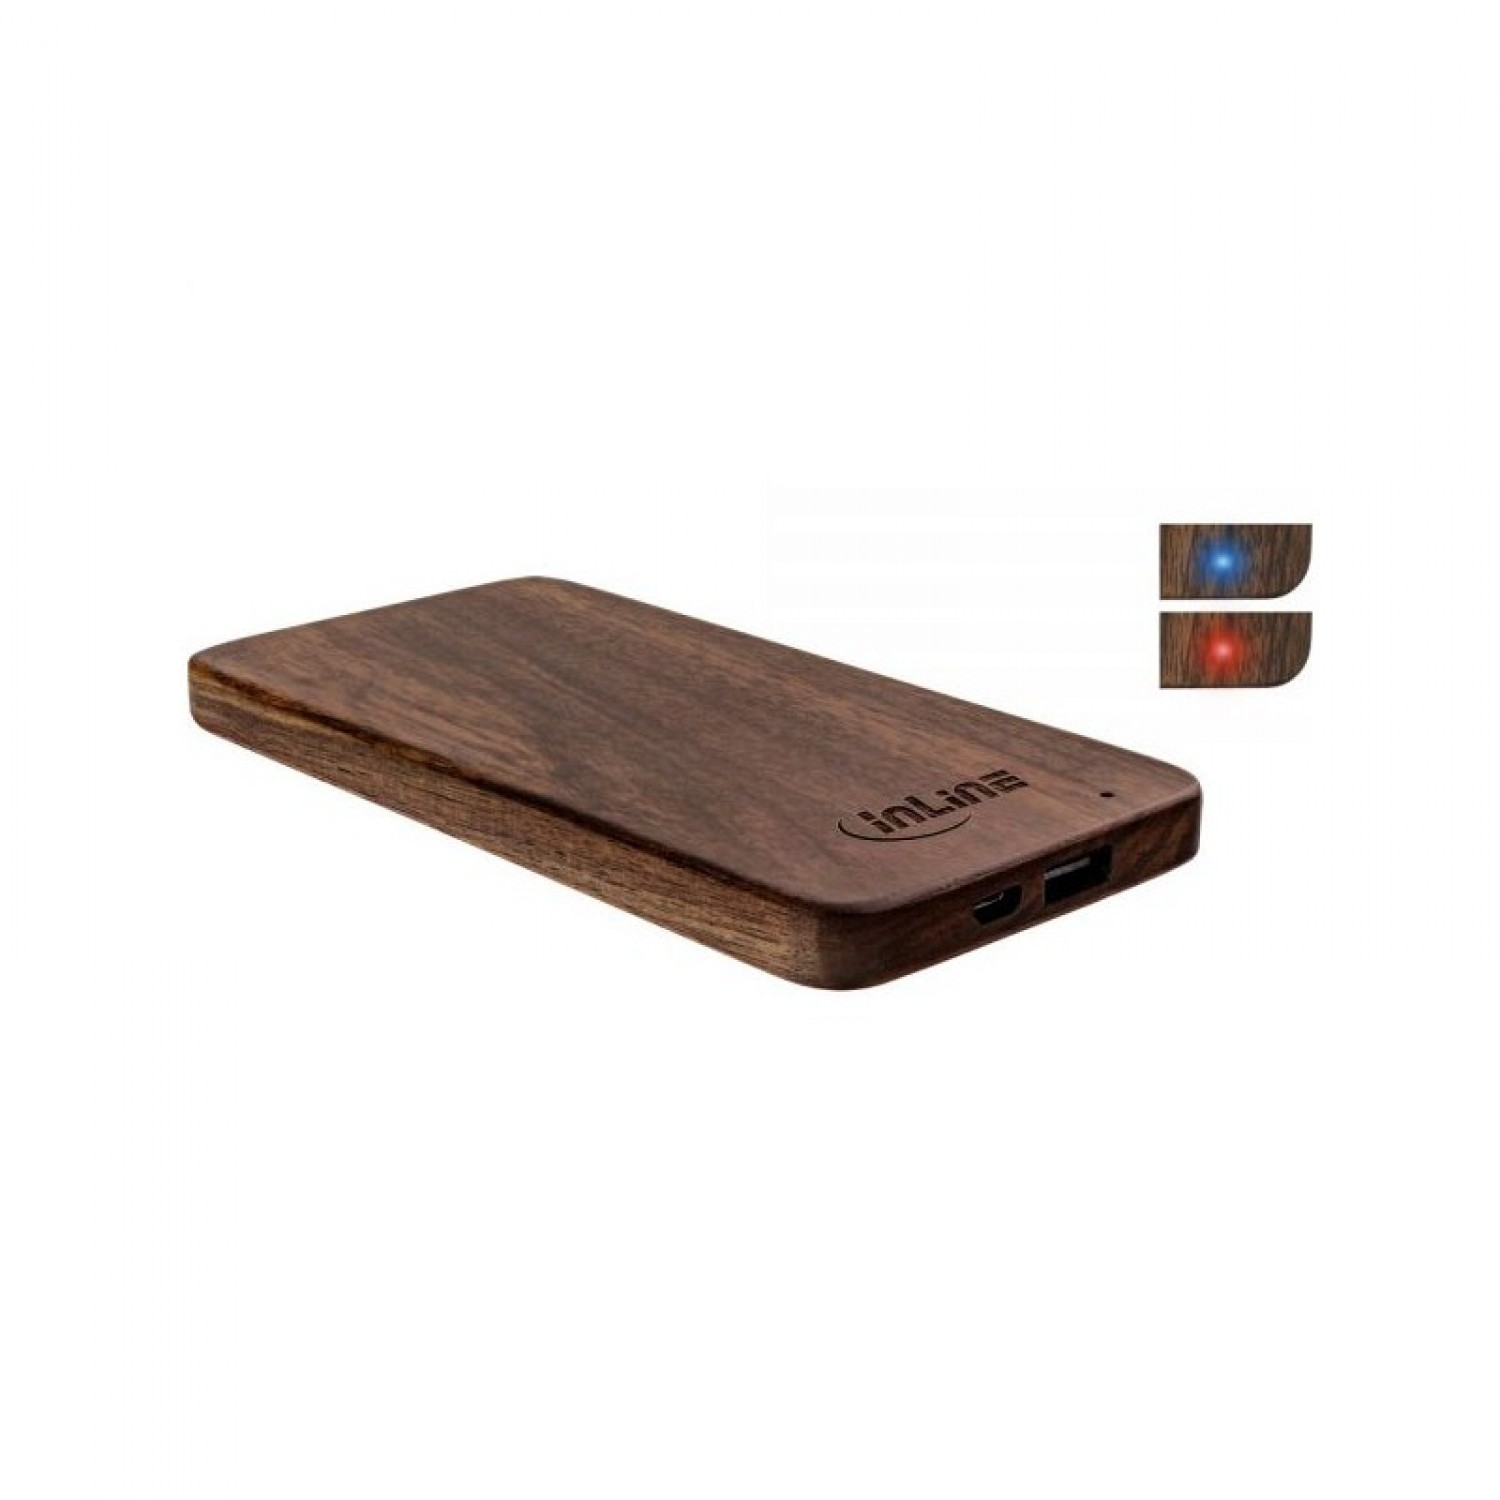 USB PowerBank aus Walnuss-Holz – InLine® woodplate